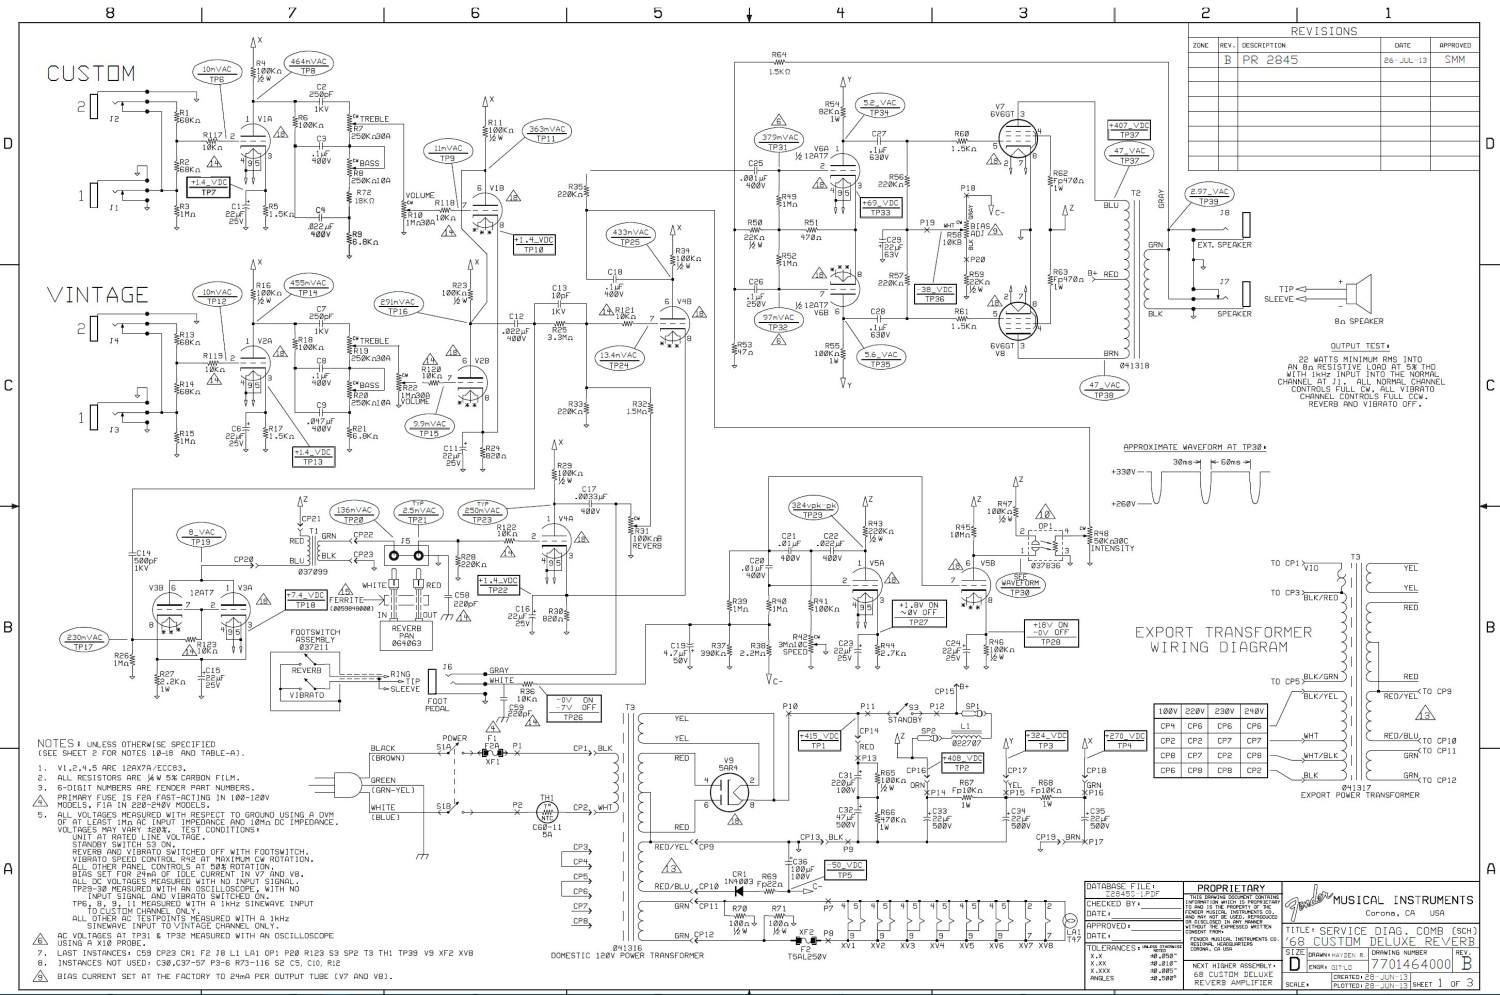 Silverface Mods on super reverb schematic, one-line diagram, circuit diagram, princeton reverb schematic, peavey reverb schematic, technical drawing, tube map, functional flow block diagram, fender bandmaster ab763 schematic, deluxe reverb schematic, piping and instrumentation diagram, fender reverb schematic, vibrolux reverb schematic, twin reverb schematic, pro reverb schematic, block diagram,